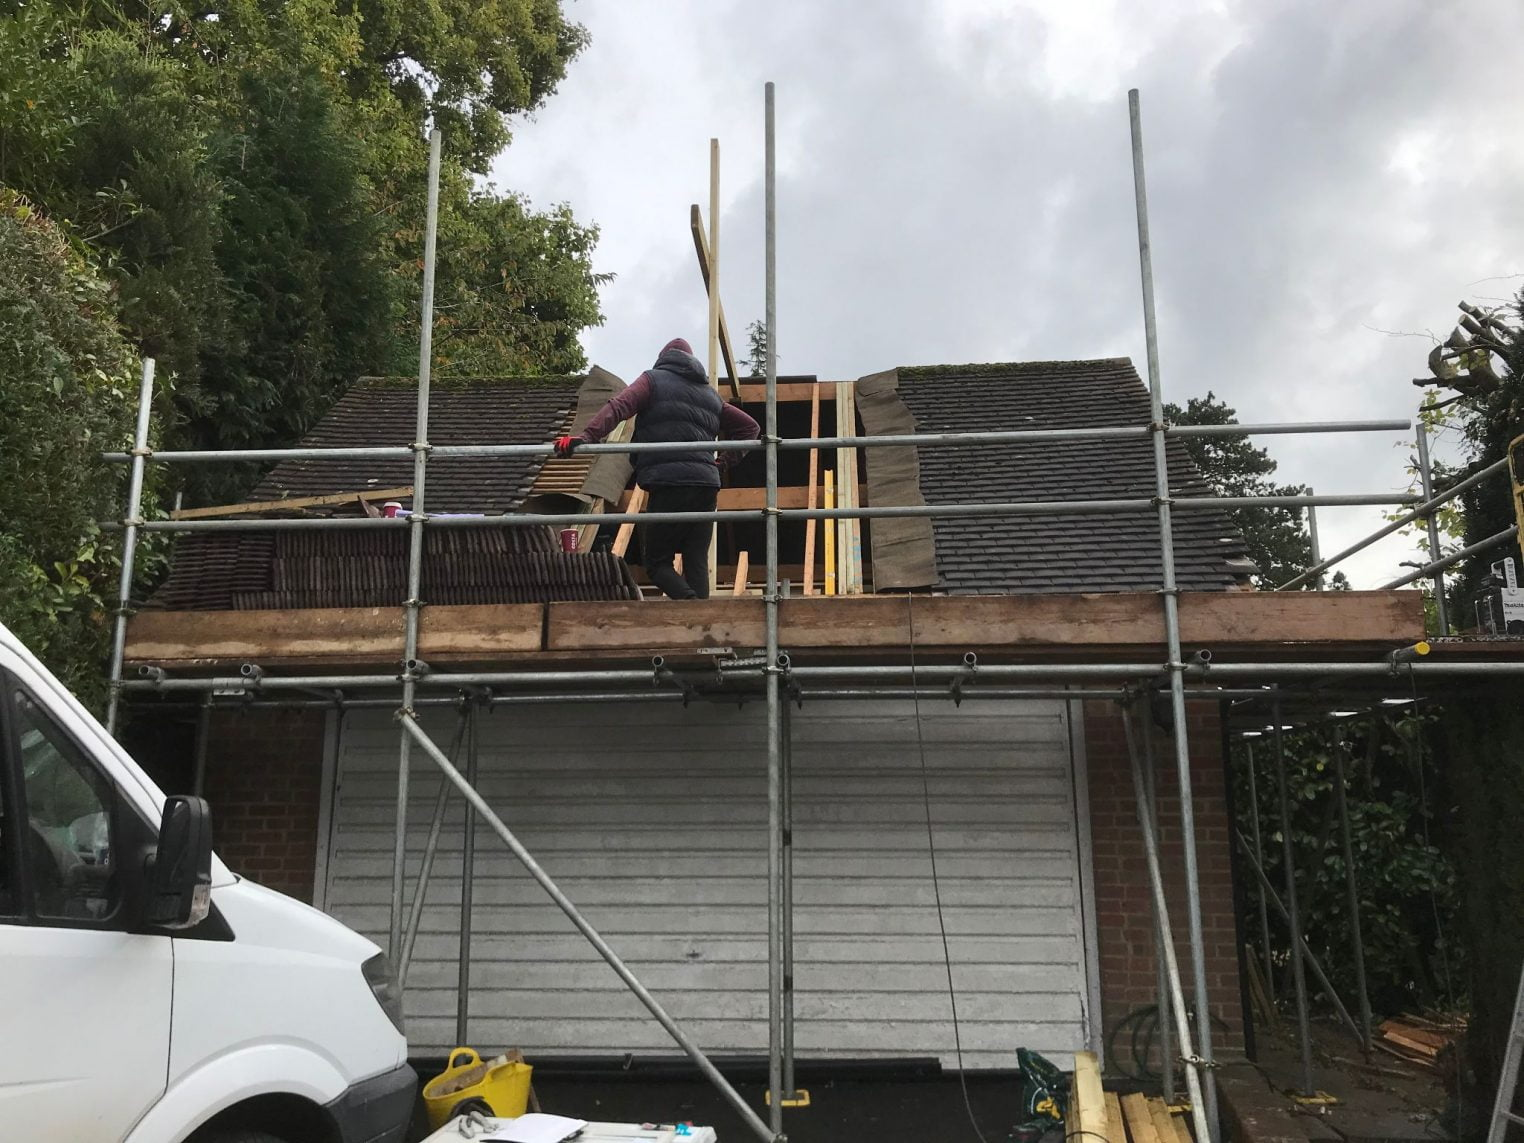 How much do loft conversions cost?